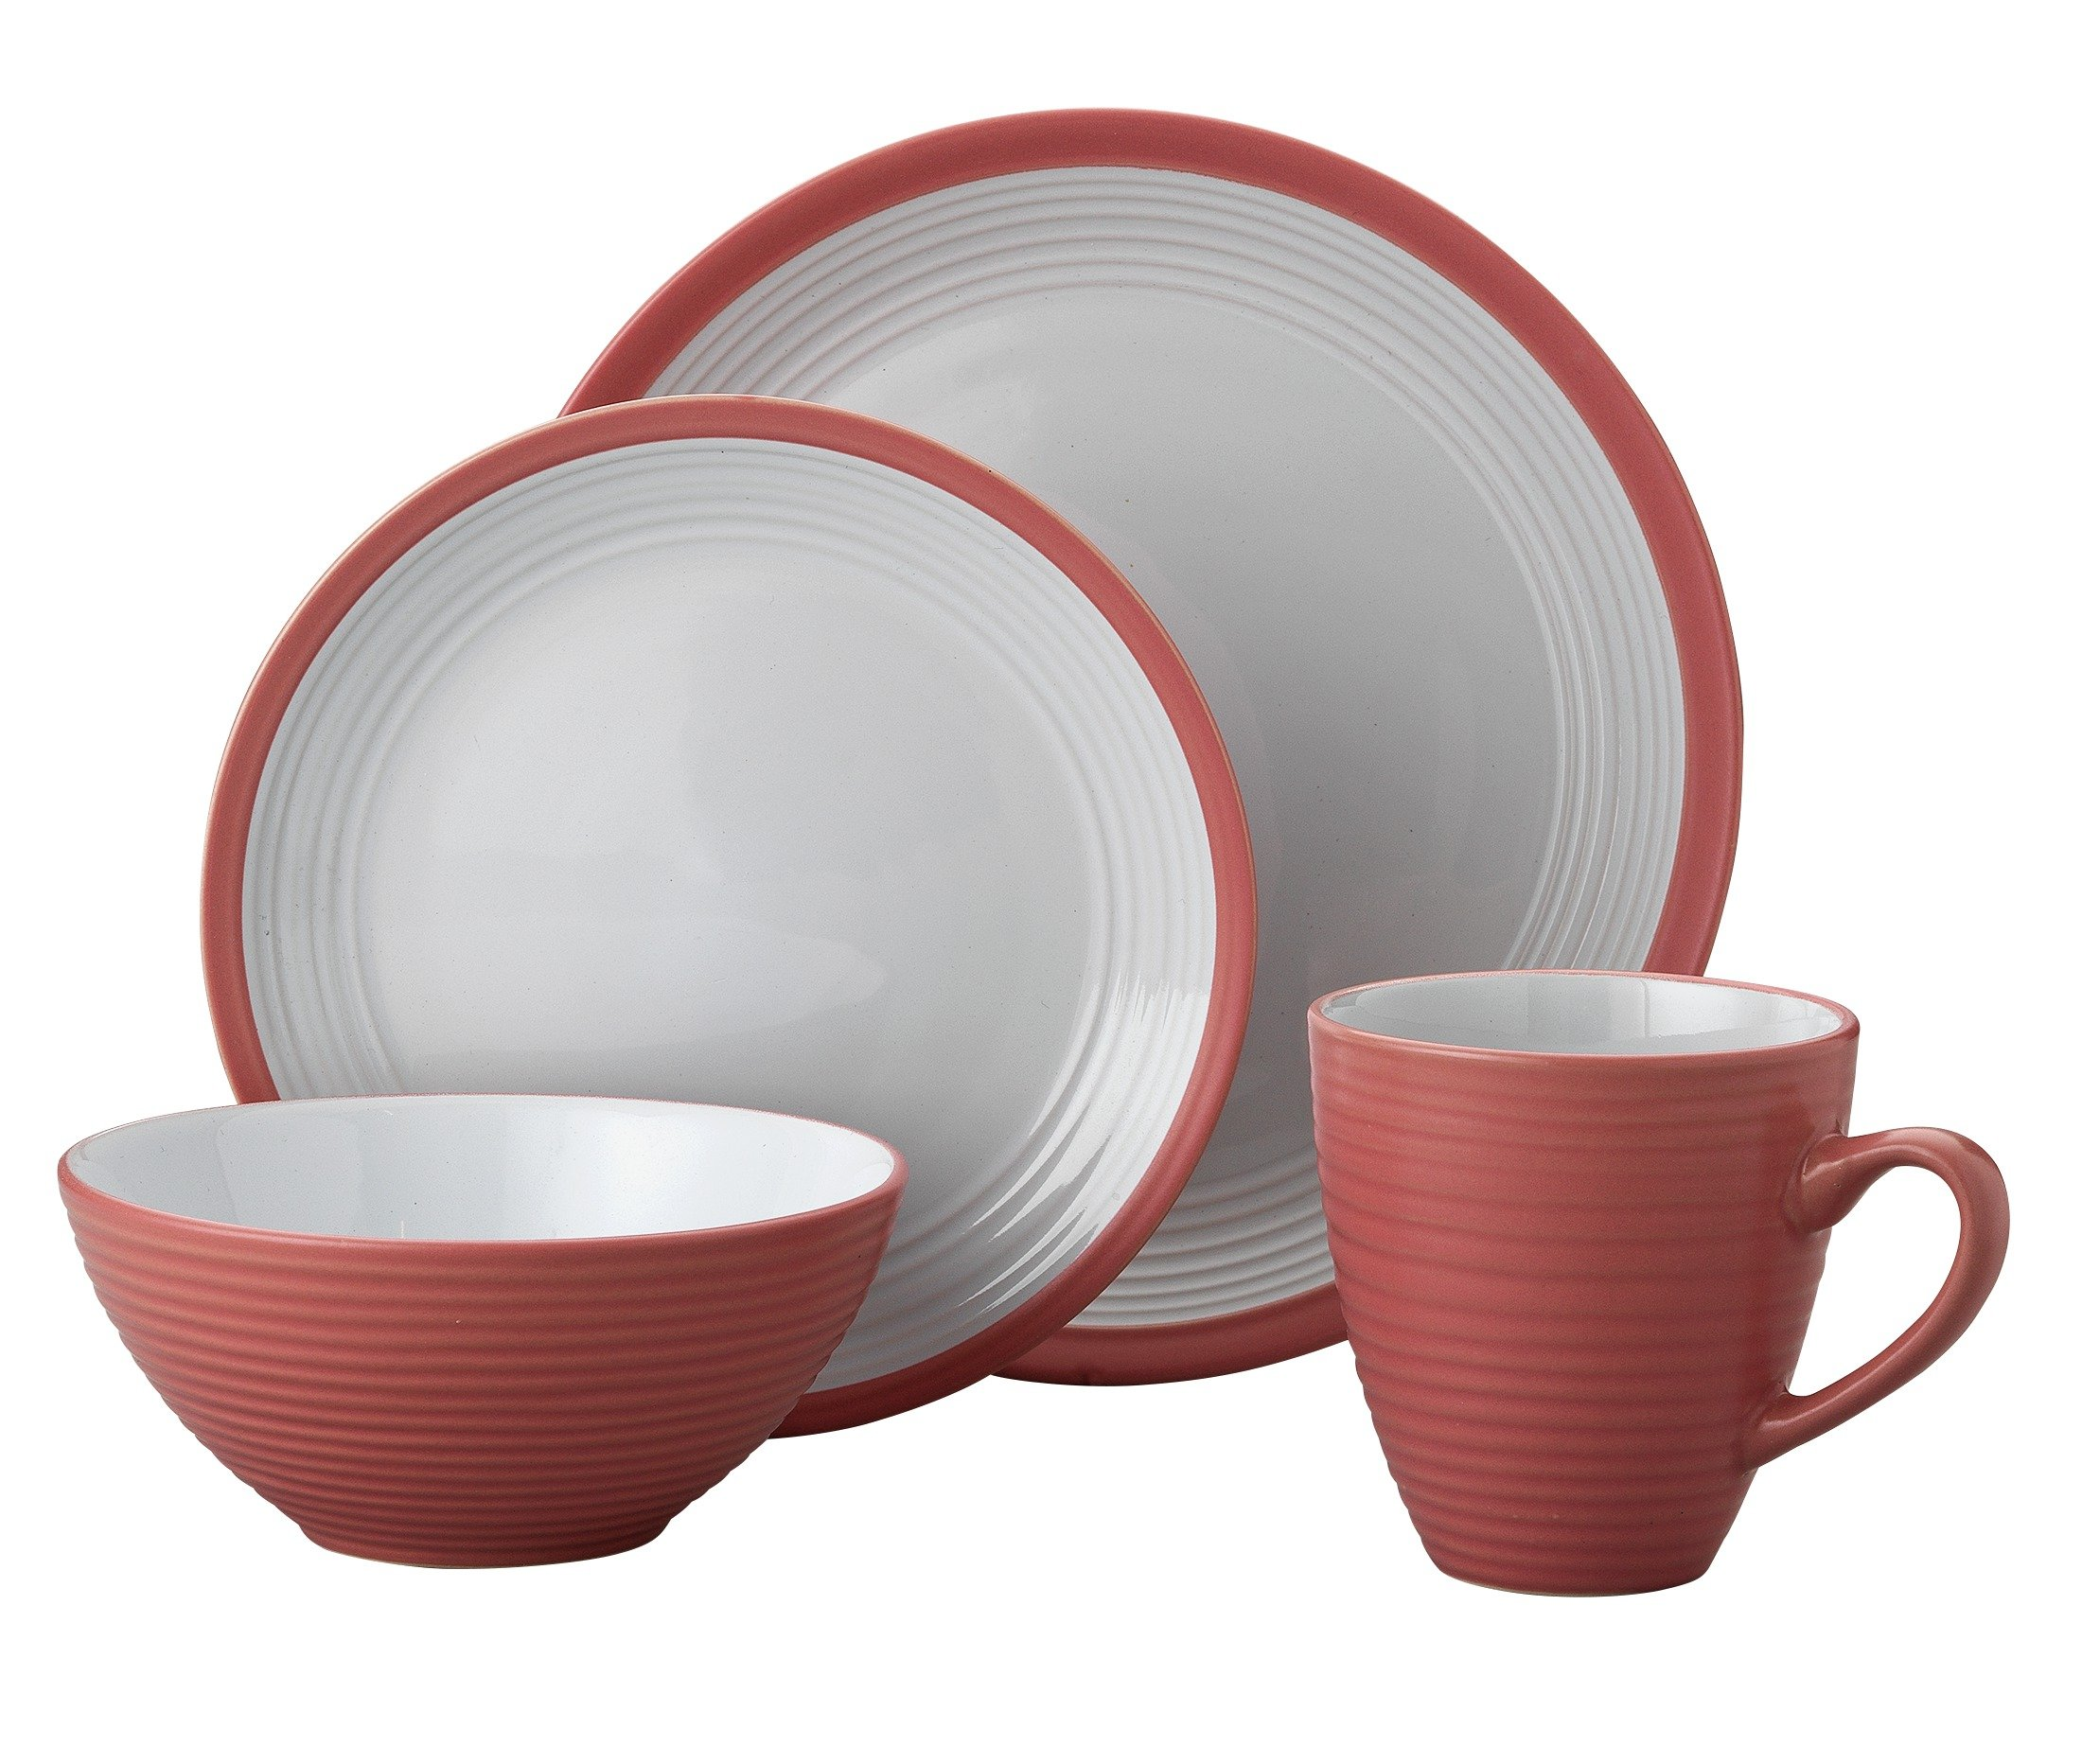 HOME 16 Piece Ribbed Stoneware Dinner Set - Pink.